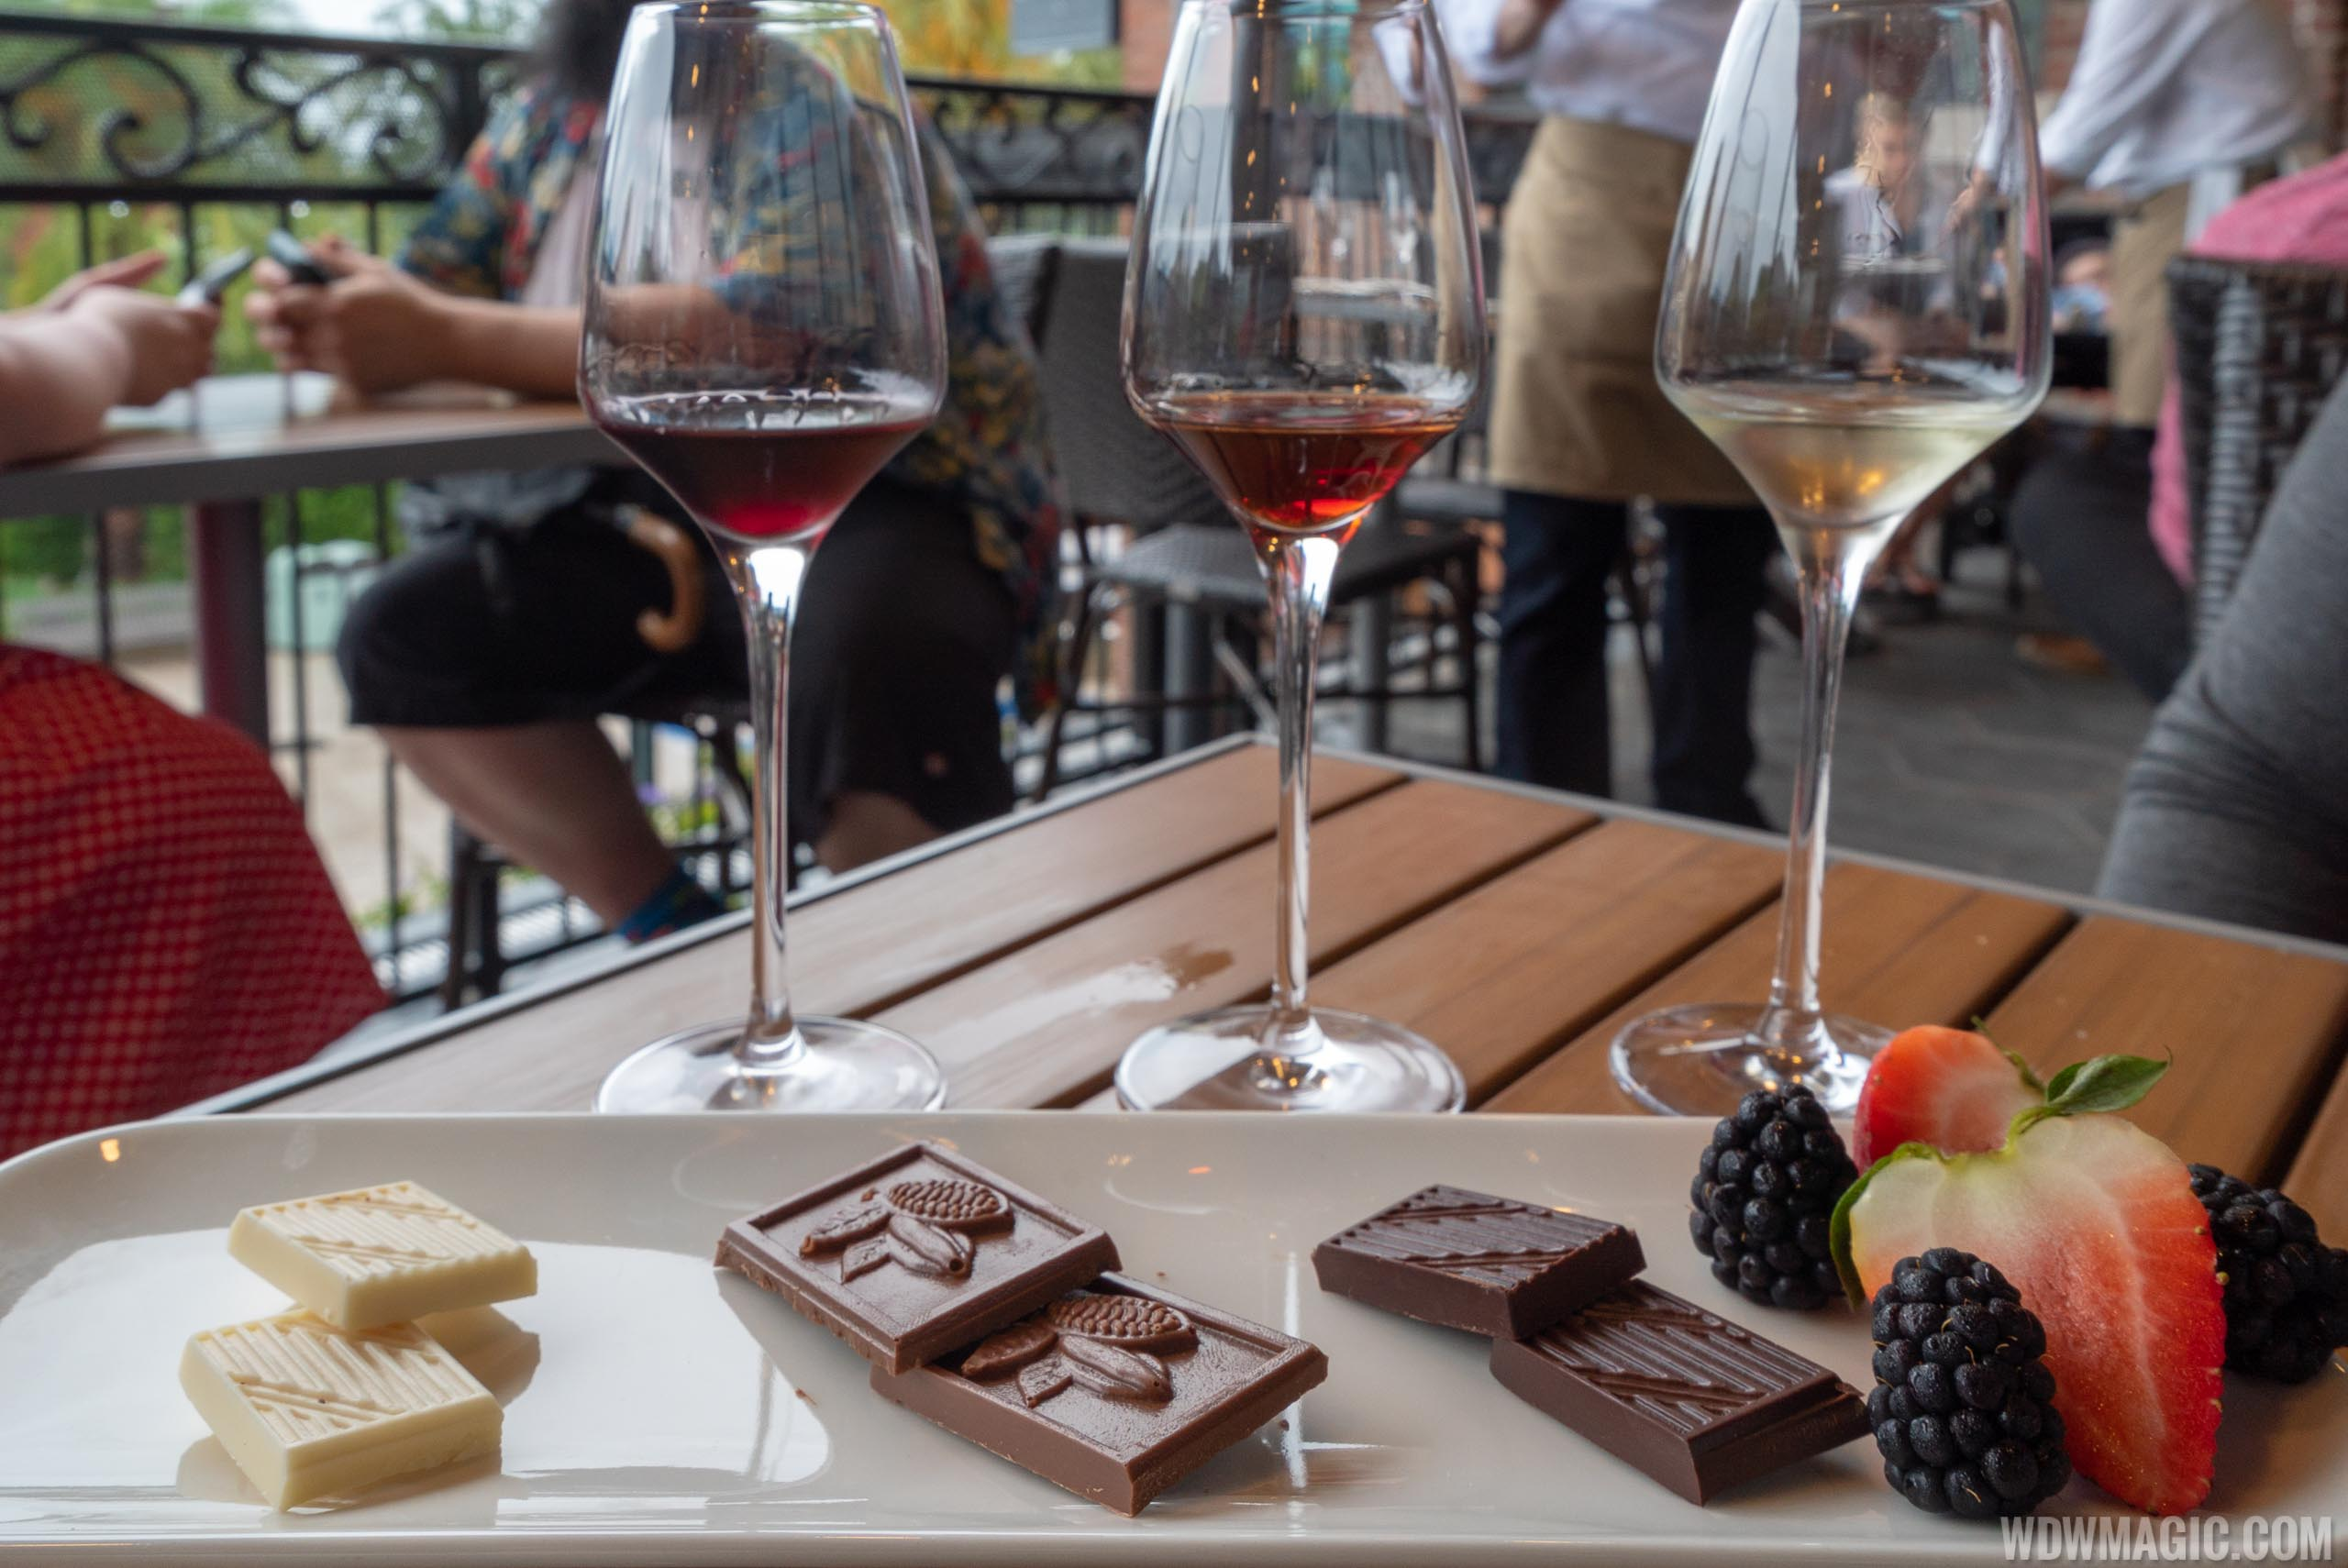 Wine Bar George - The Chocolate Experience with 3 1oz wine pairings $22